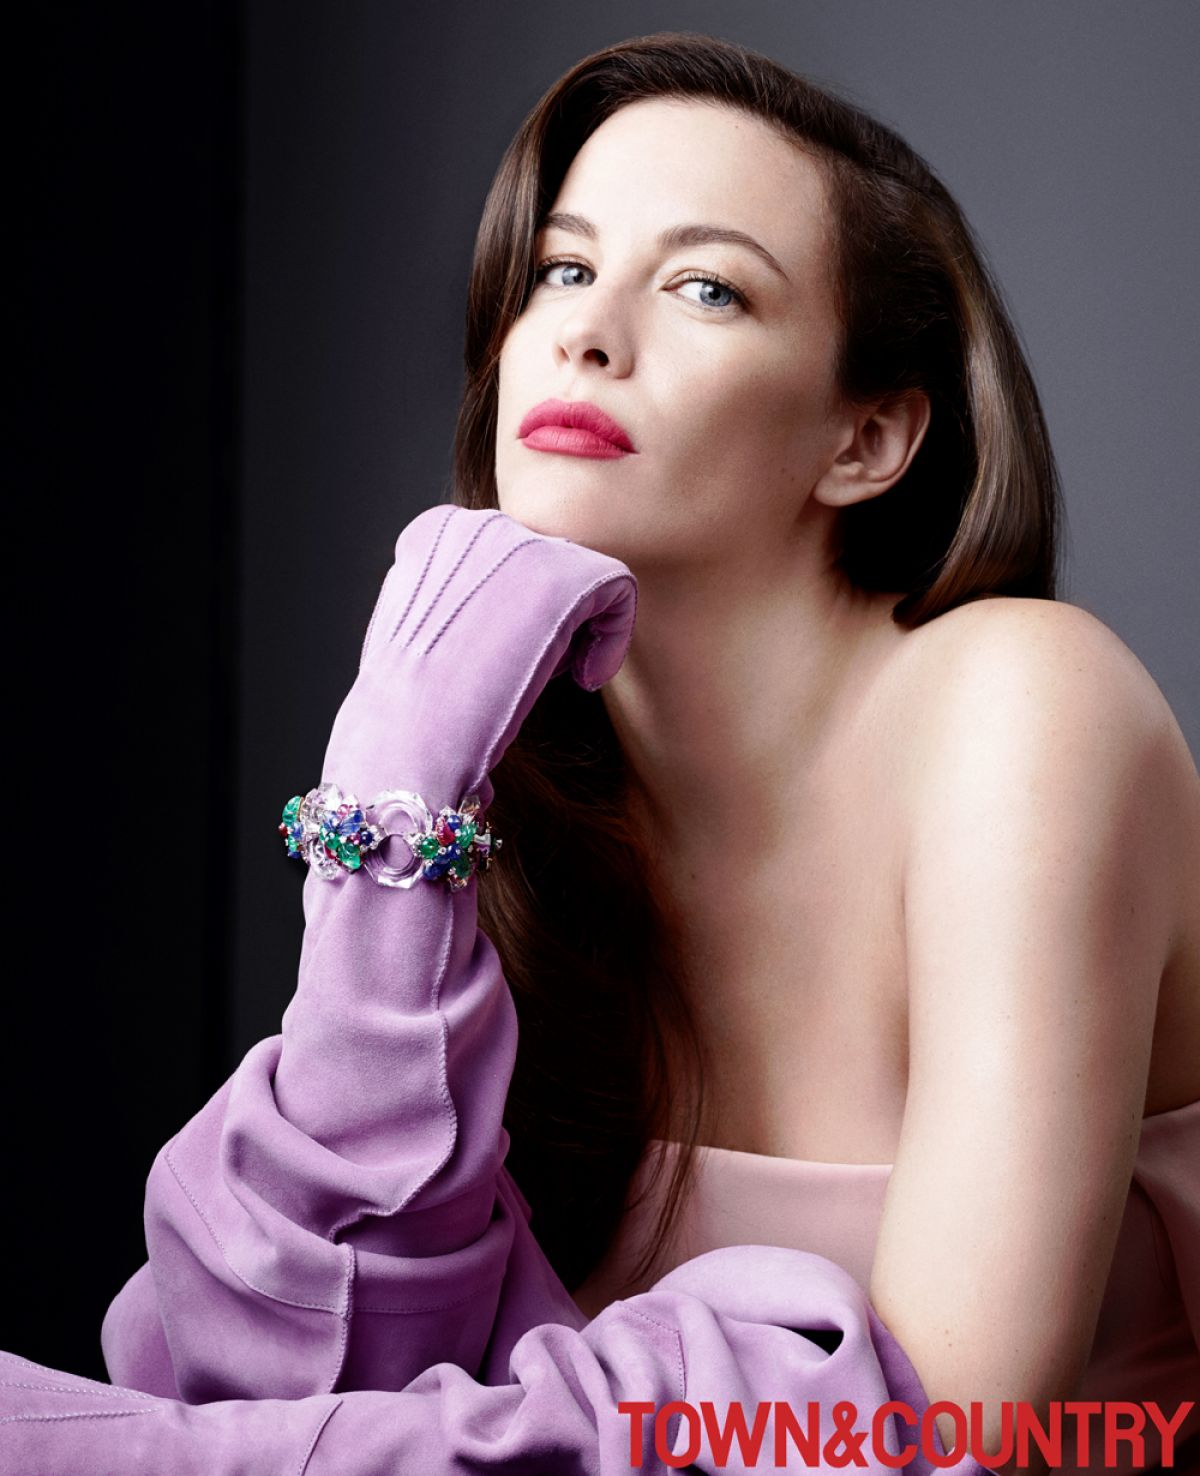 LIV TYLER in Town & Country Magazine, December/January 2014/2015 Issue